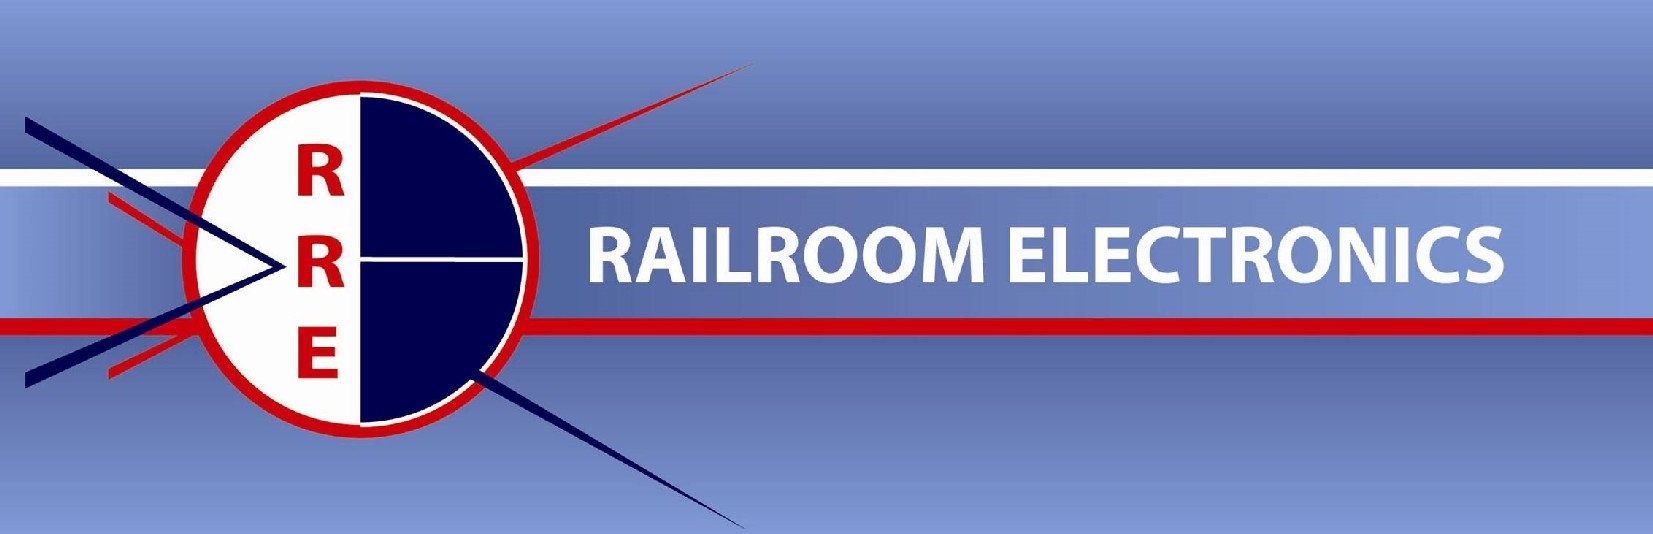 RAILROOM ELECTRONICS